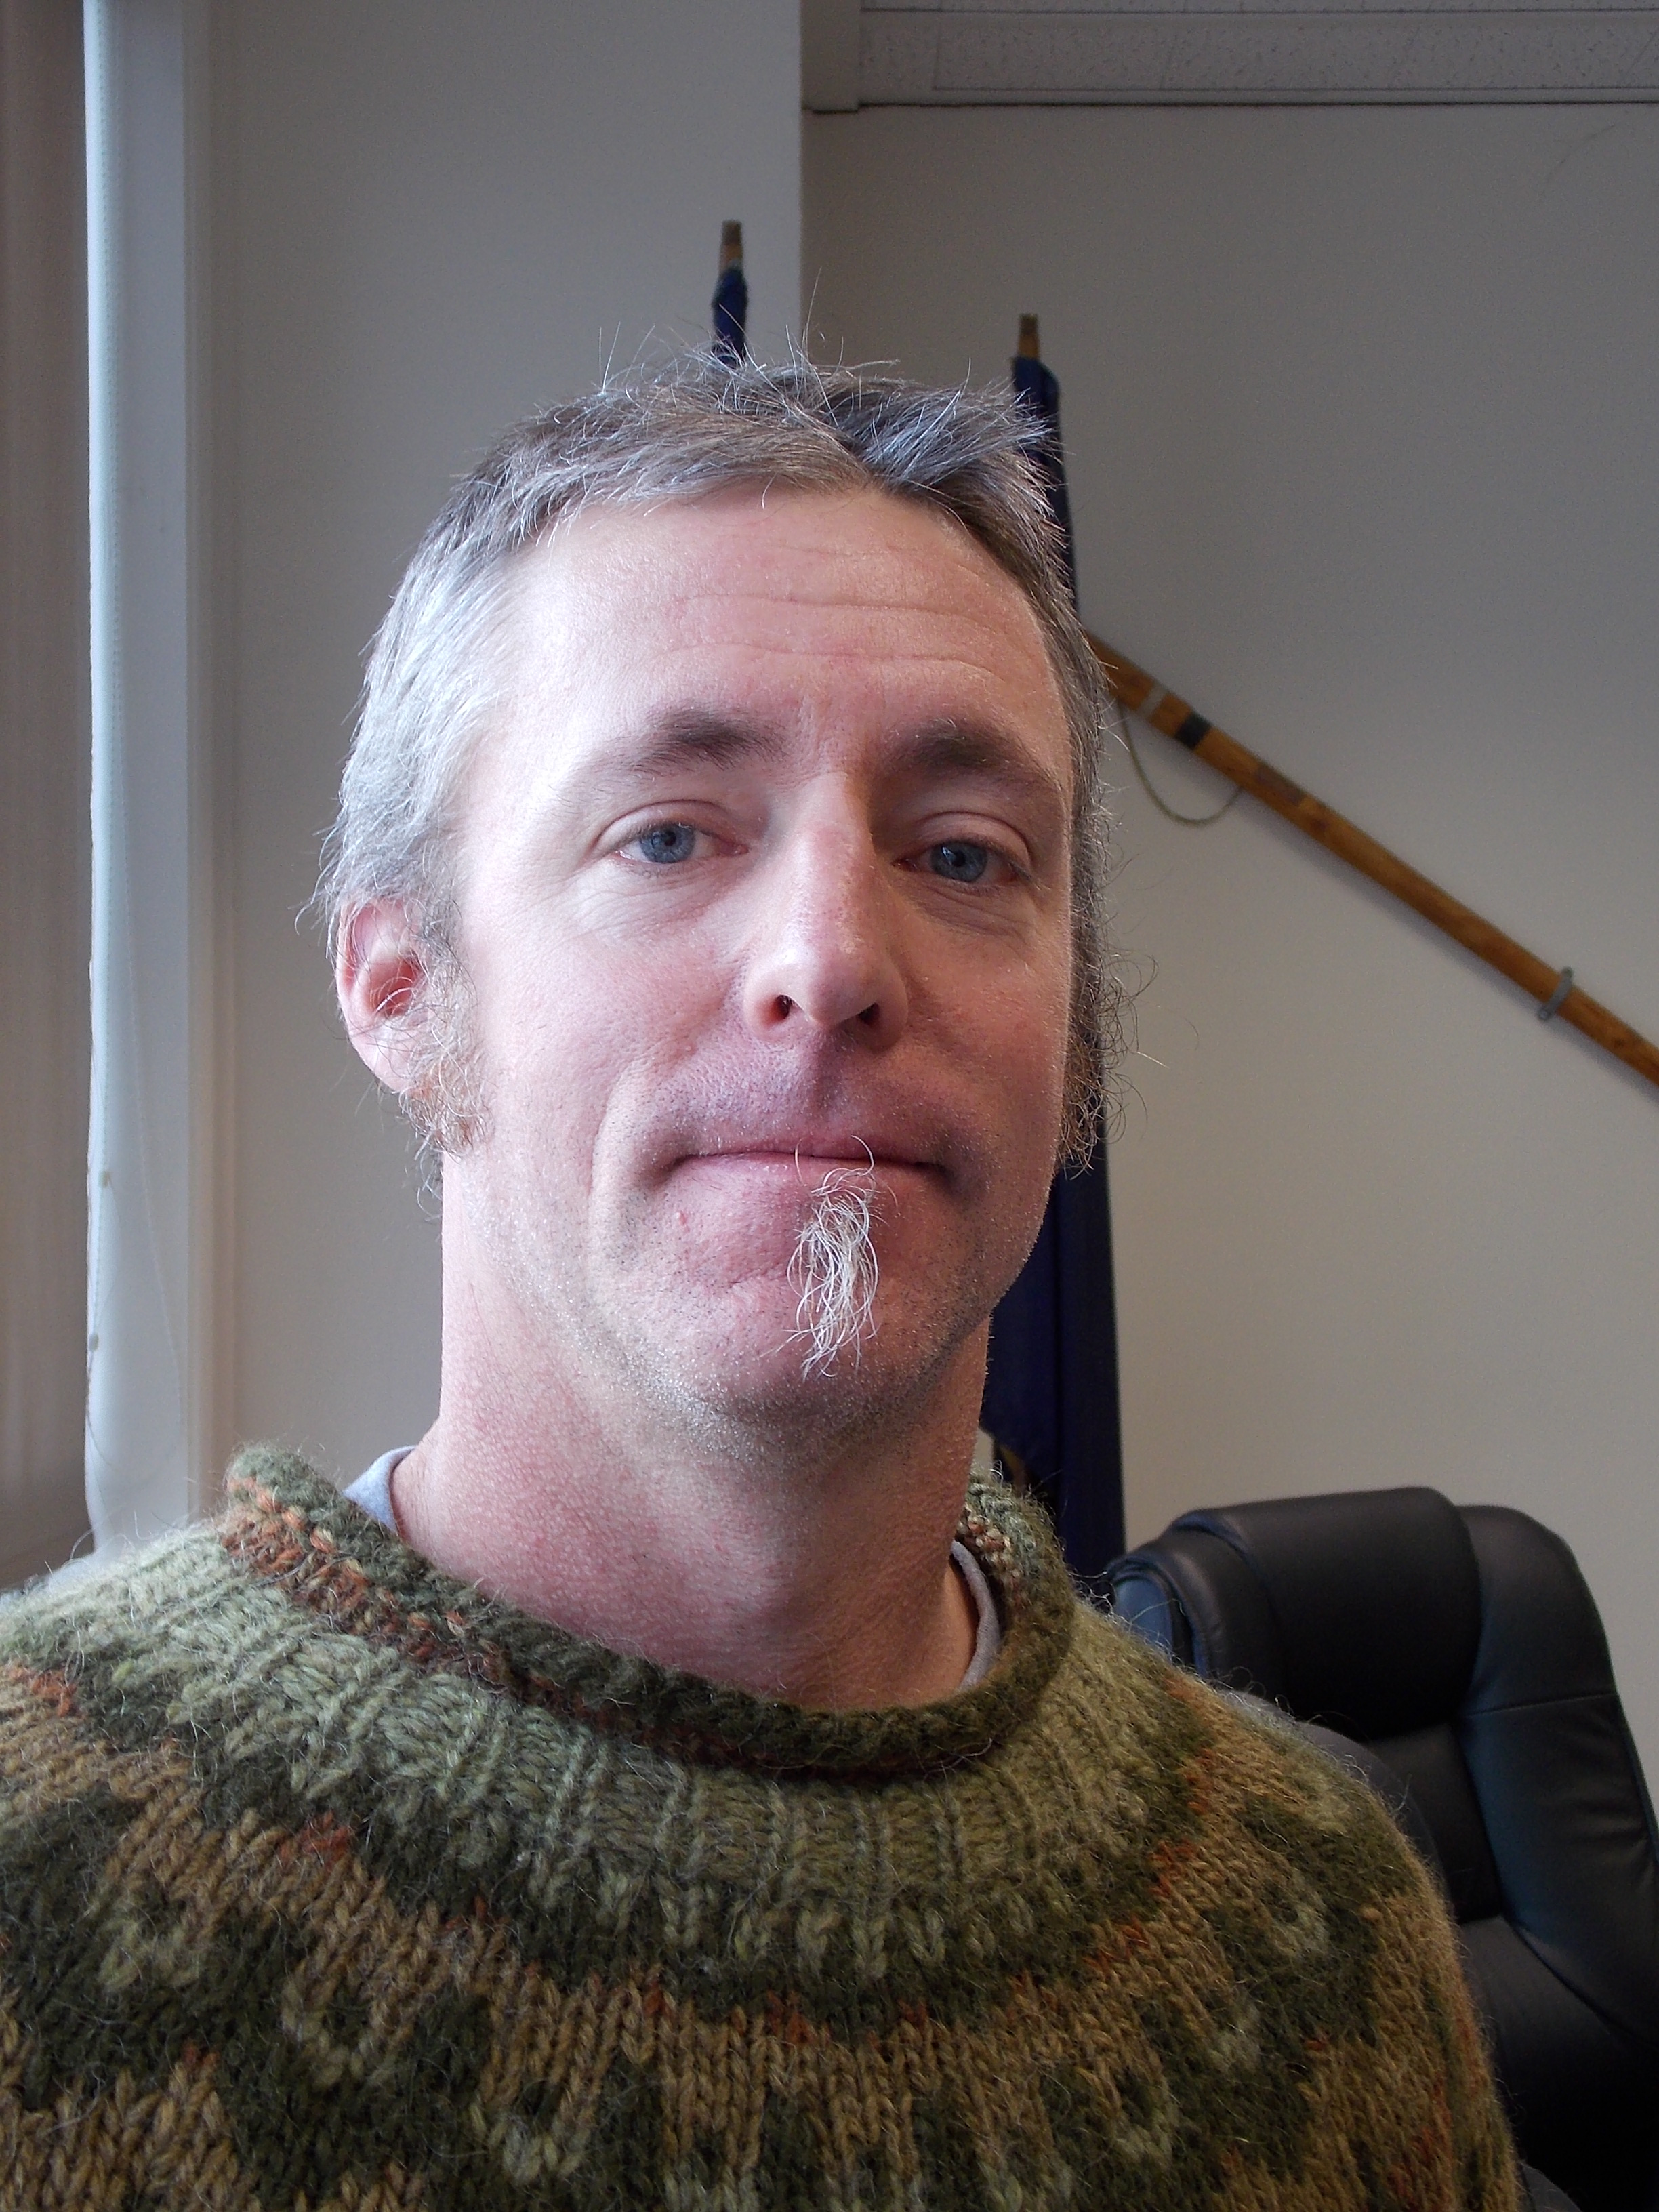 Jeigh Stanton--Gregor, 39, of Petersburg is running for reelection for Petersburg borough assembly.